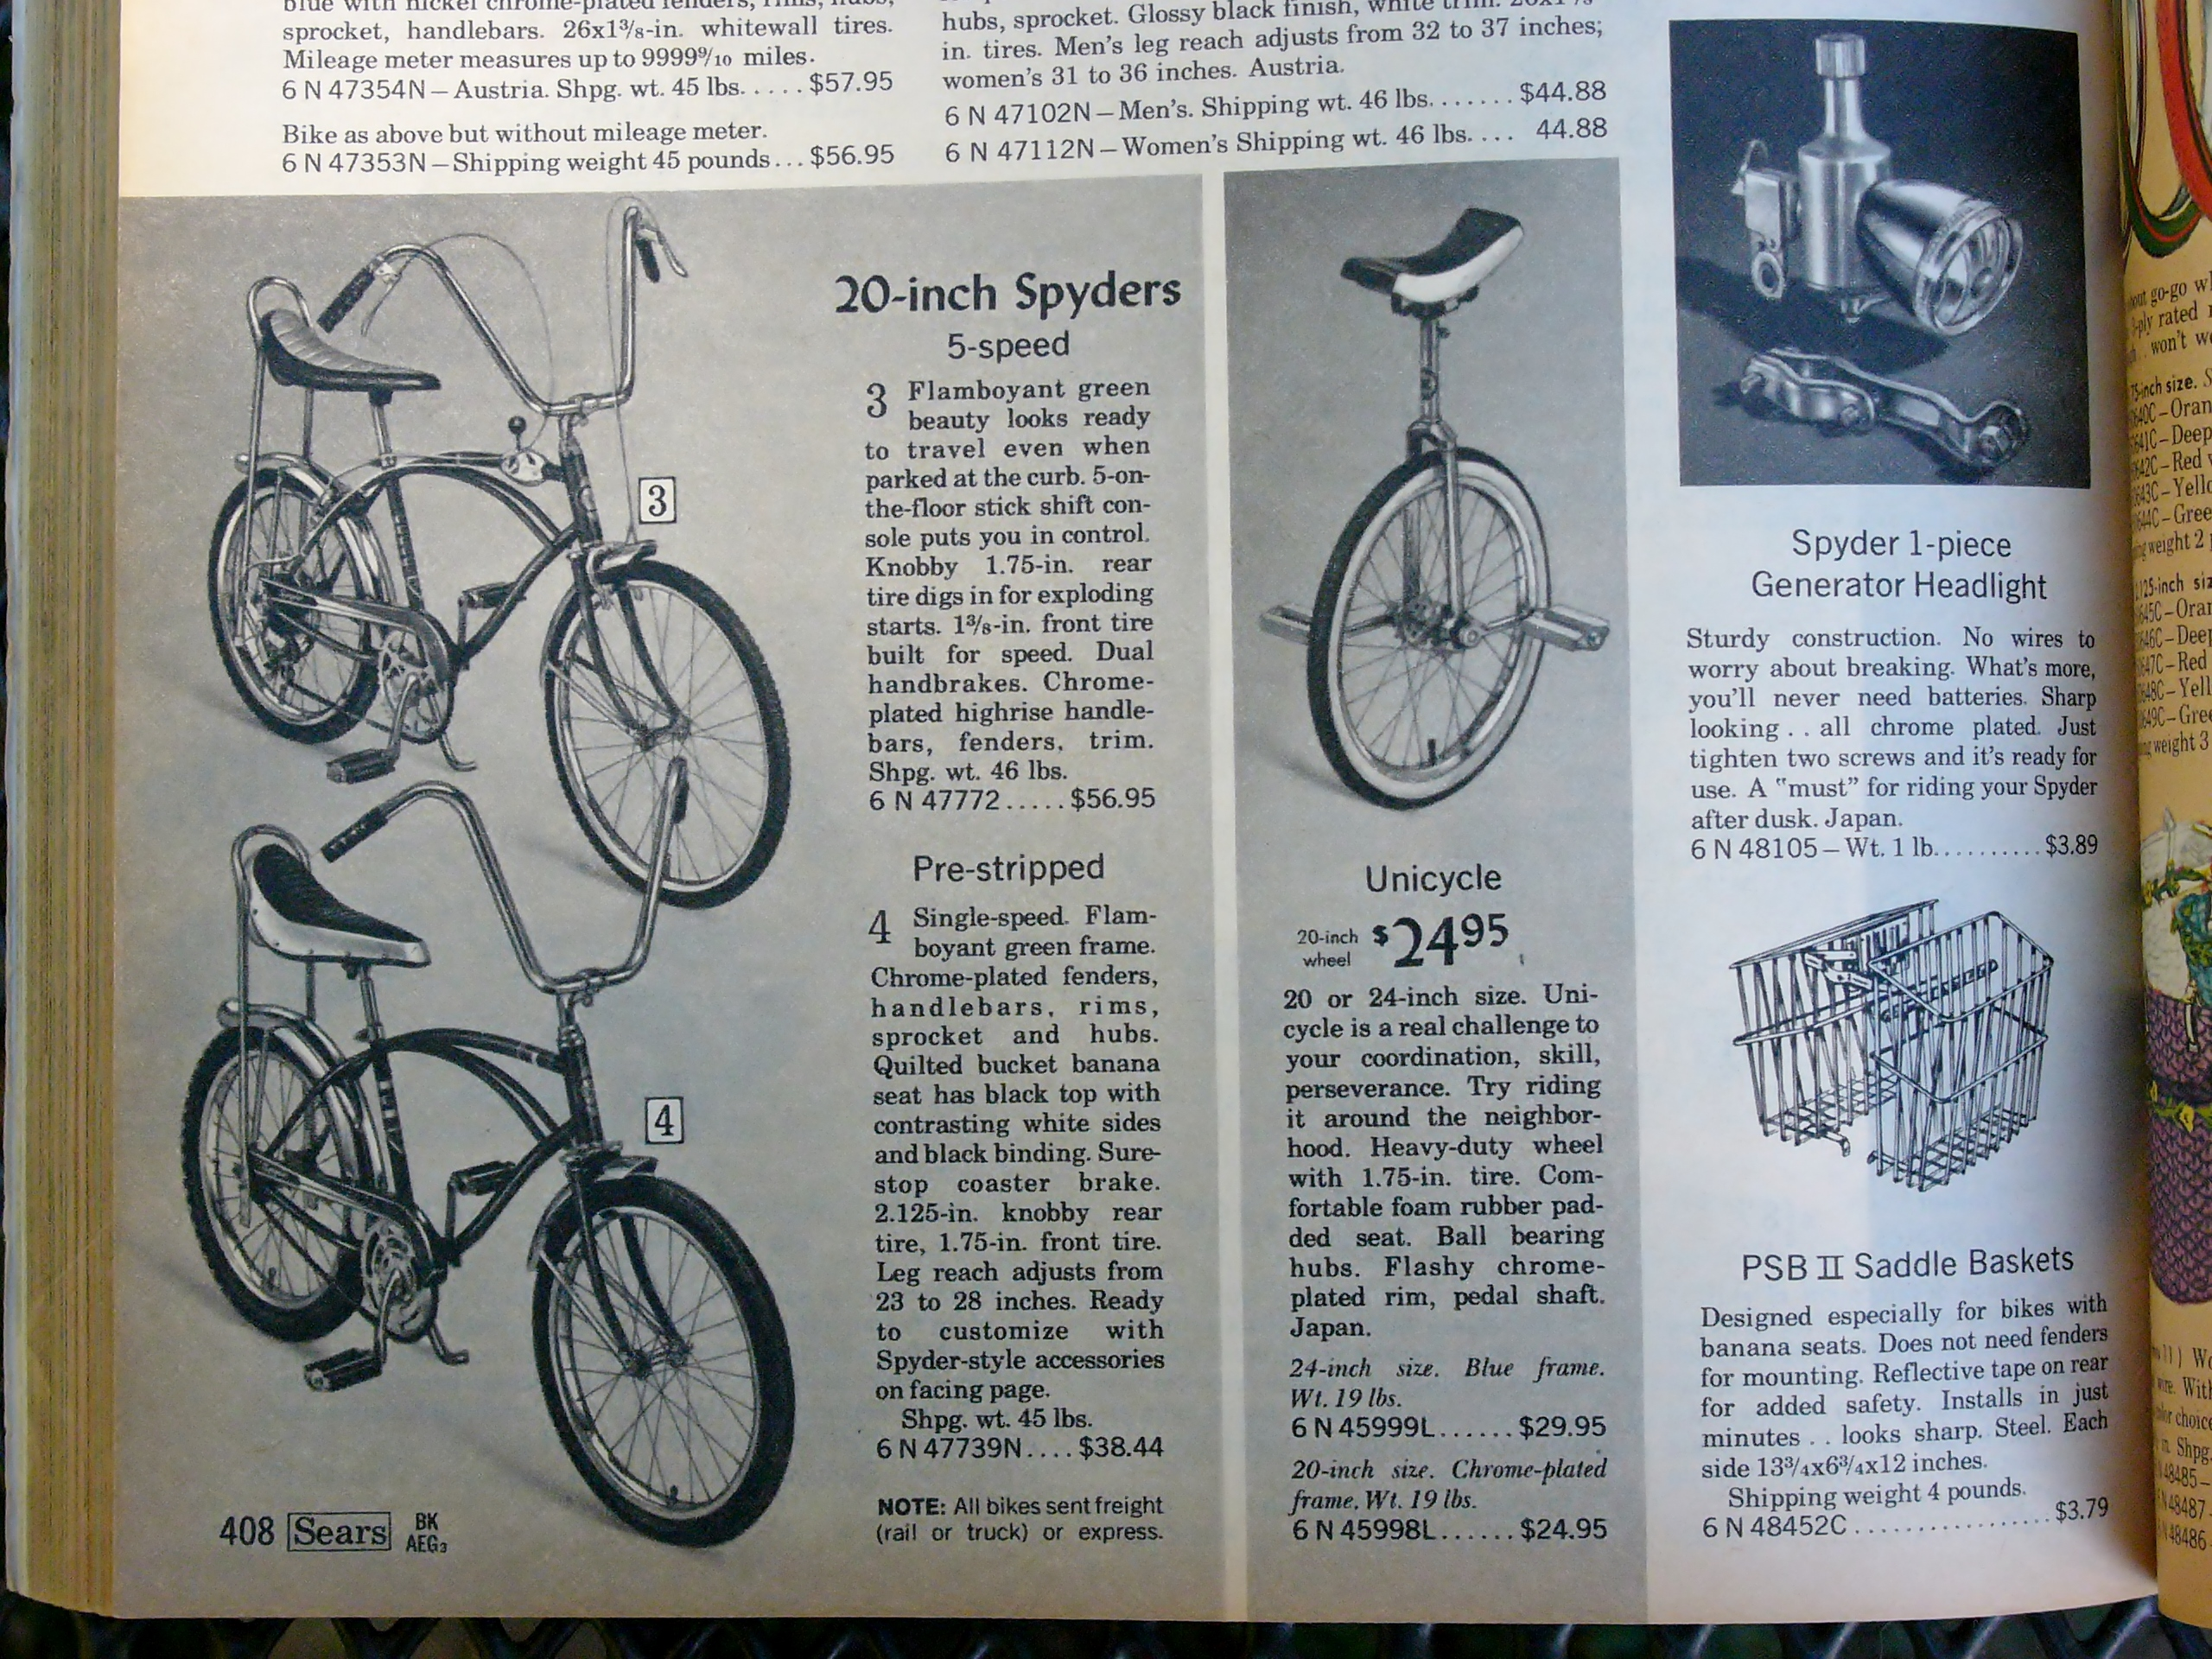 1960 sears bicycle - 2015 10 02 005